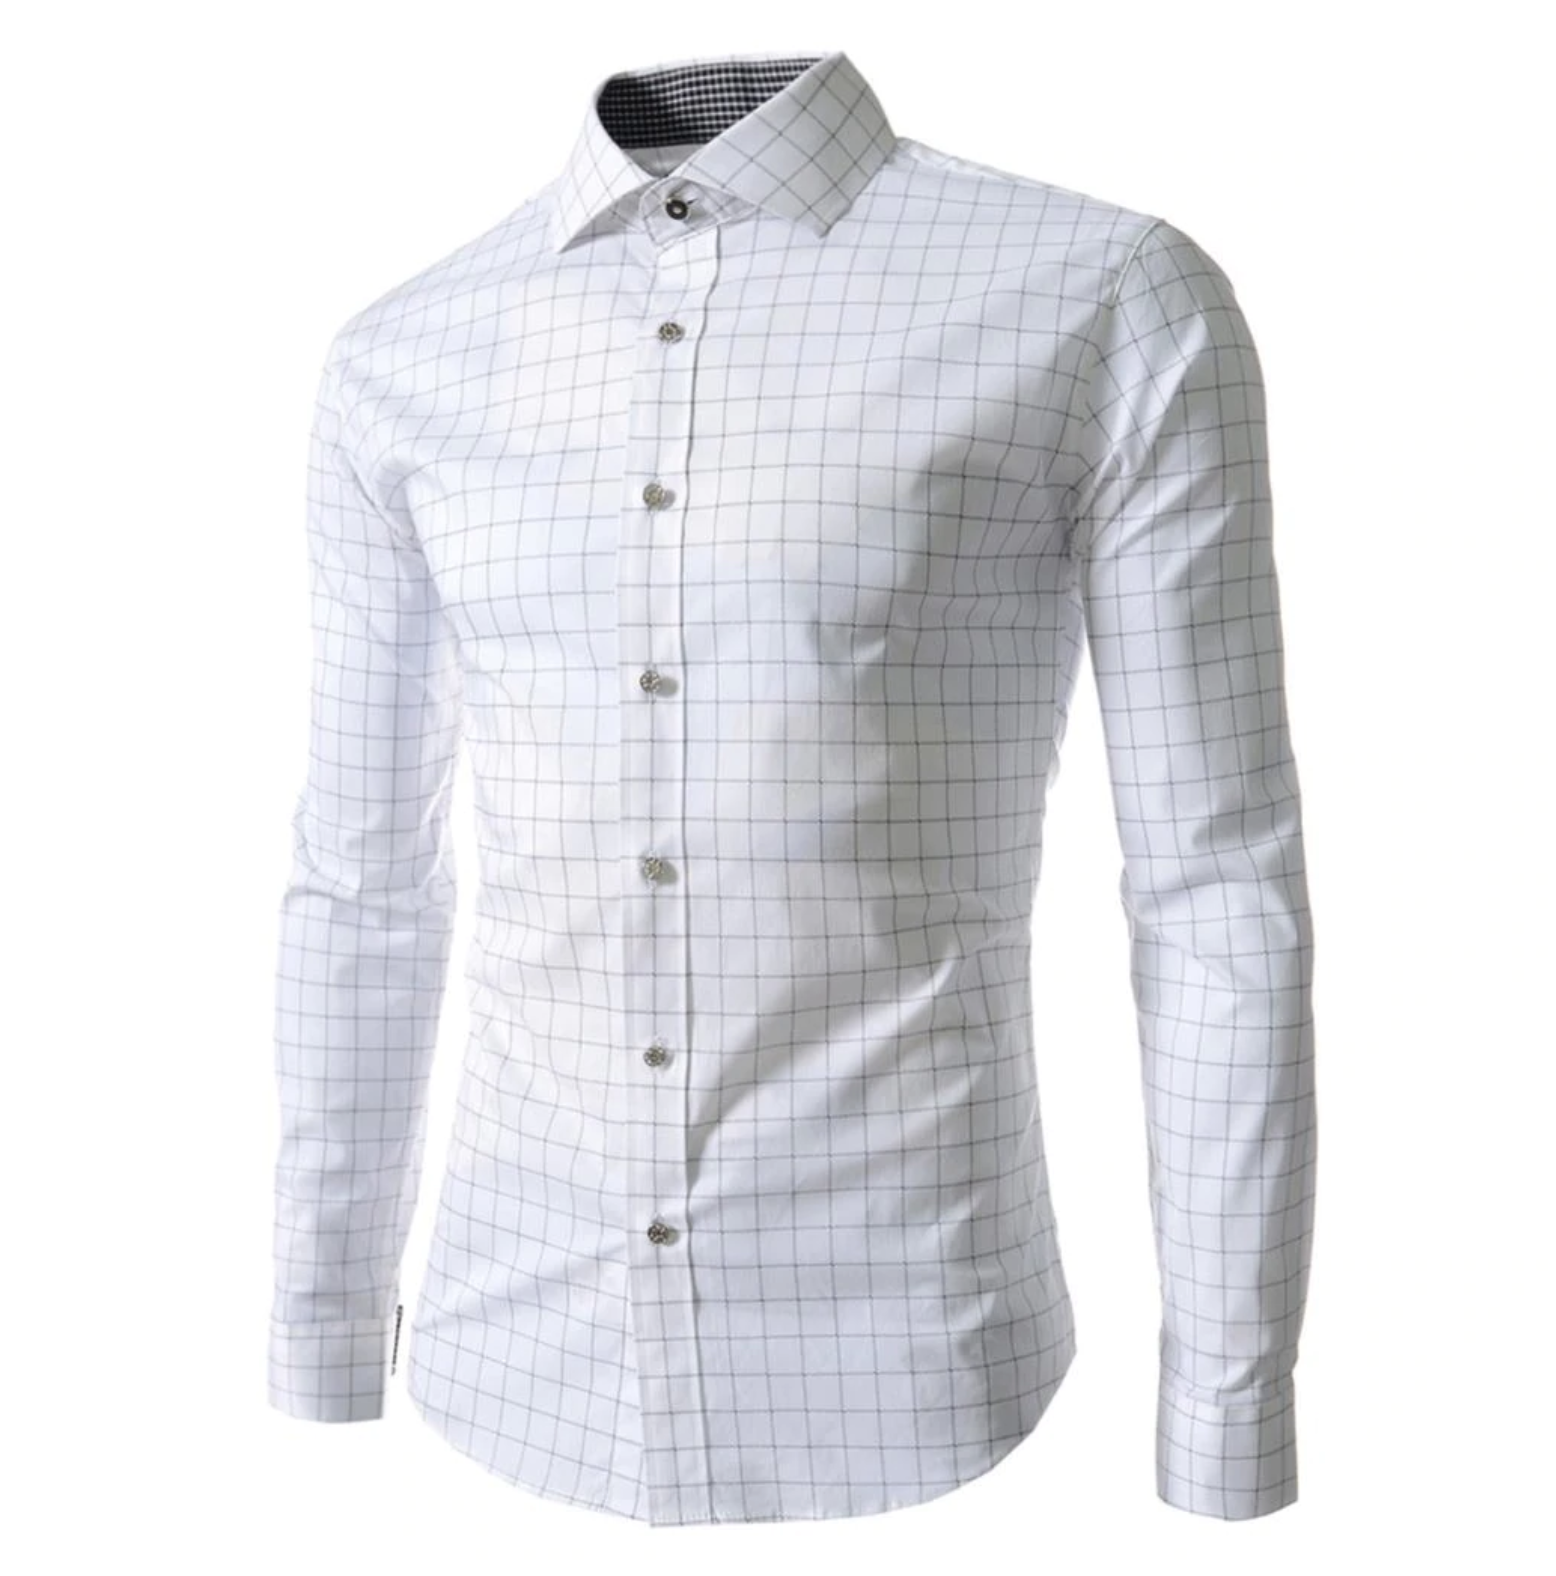 "This white button-down may look a little formal, but it's always better to be overdressed than underdressed. Most importantly, the subtle Excel spreadsheet-like pattern will gently remind everyone you work in an office setting, before they stop you in the hallway and ask ""are you lost?"", again."